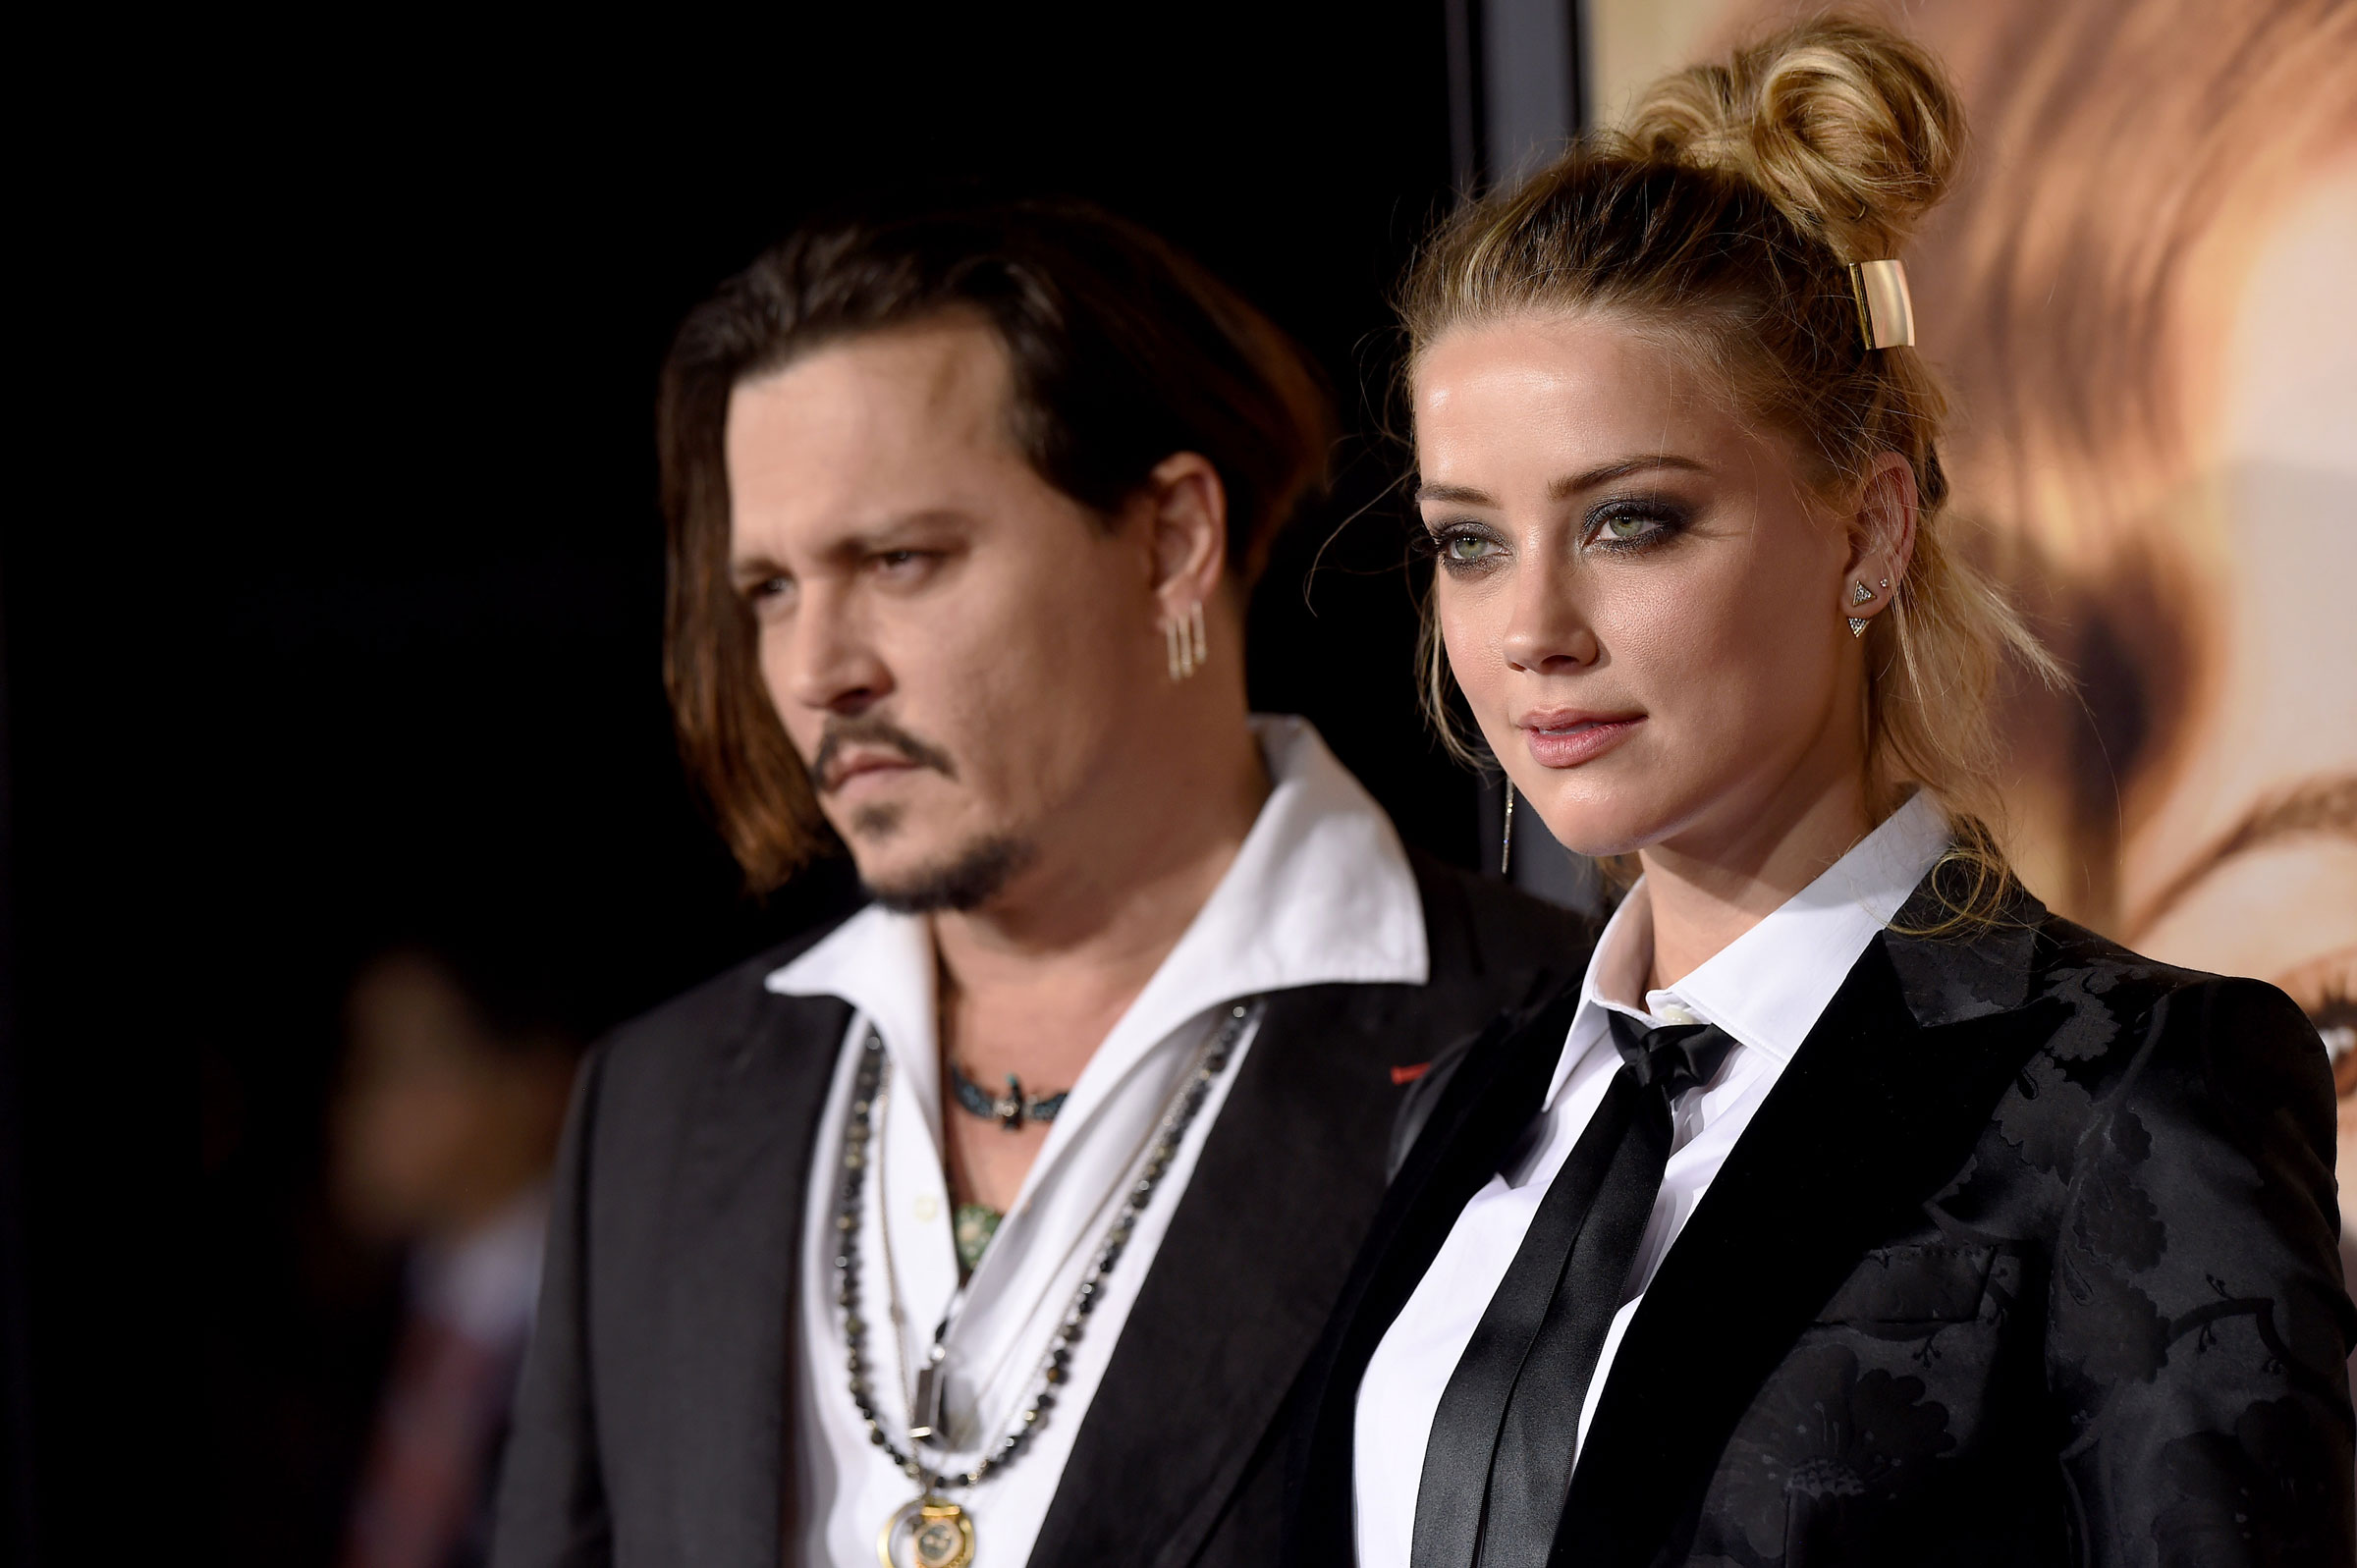 Amber Heard and Johnny Depp, a white couple both wearing all black outfits, pose together on a red carpet in 2015